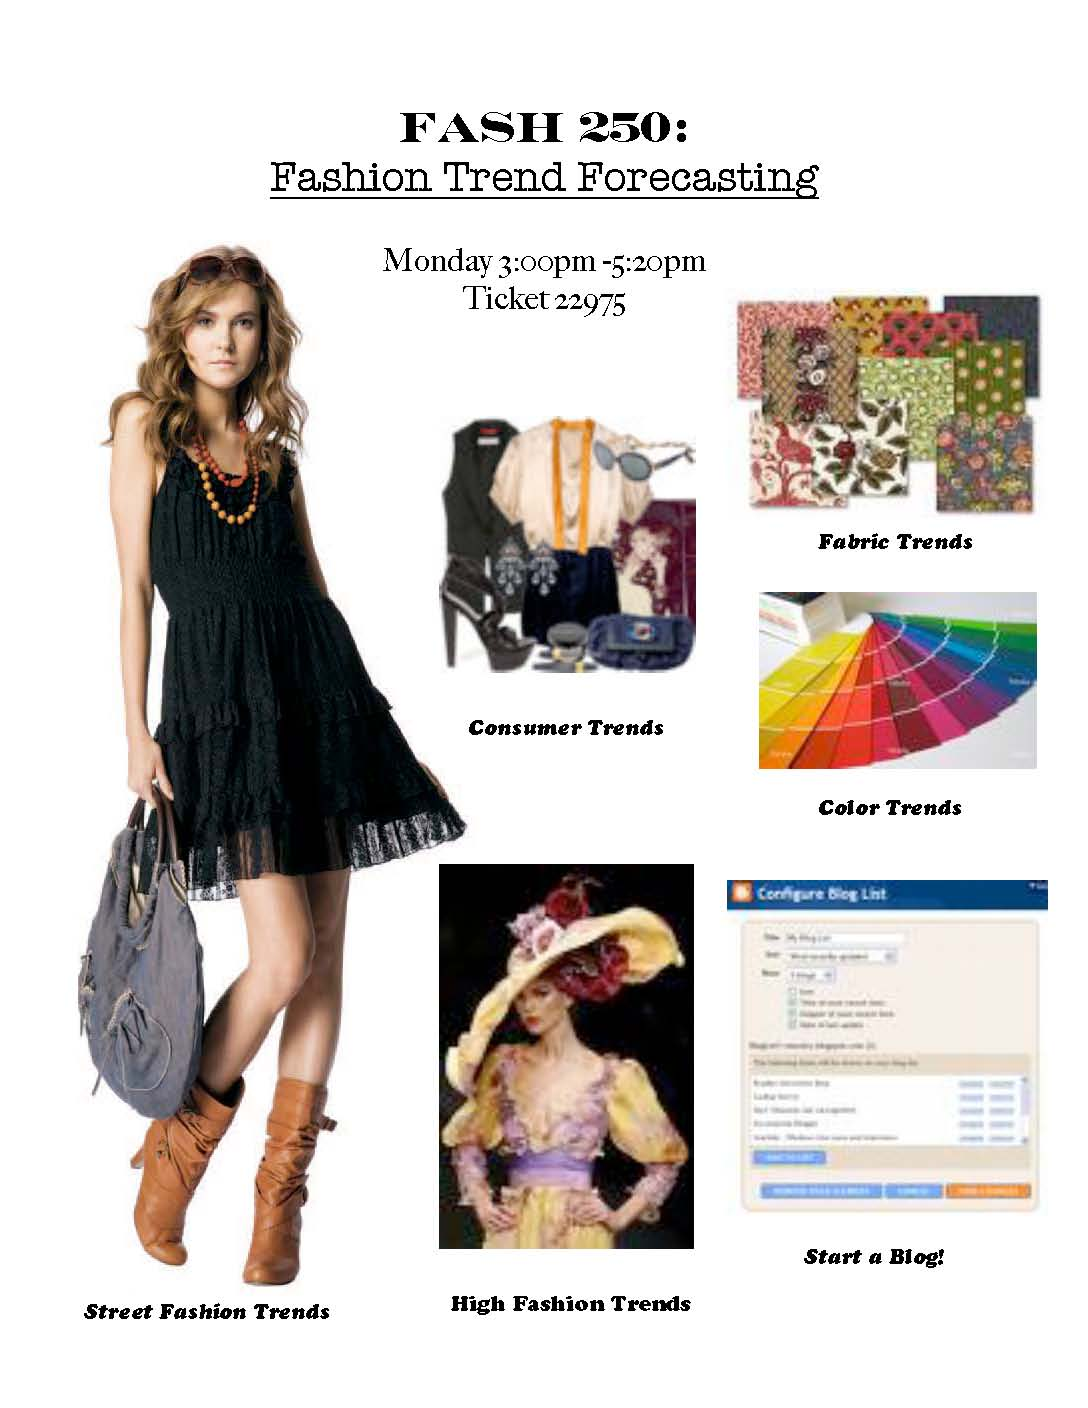 Fashion forecasting - Wikipedia